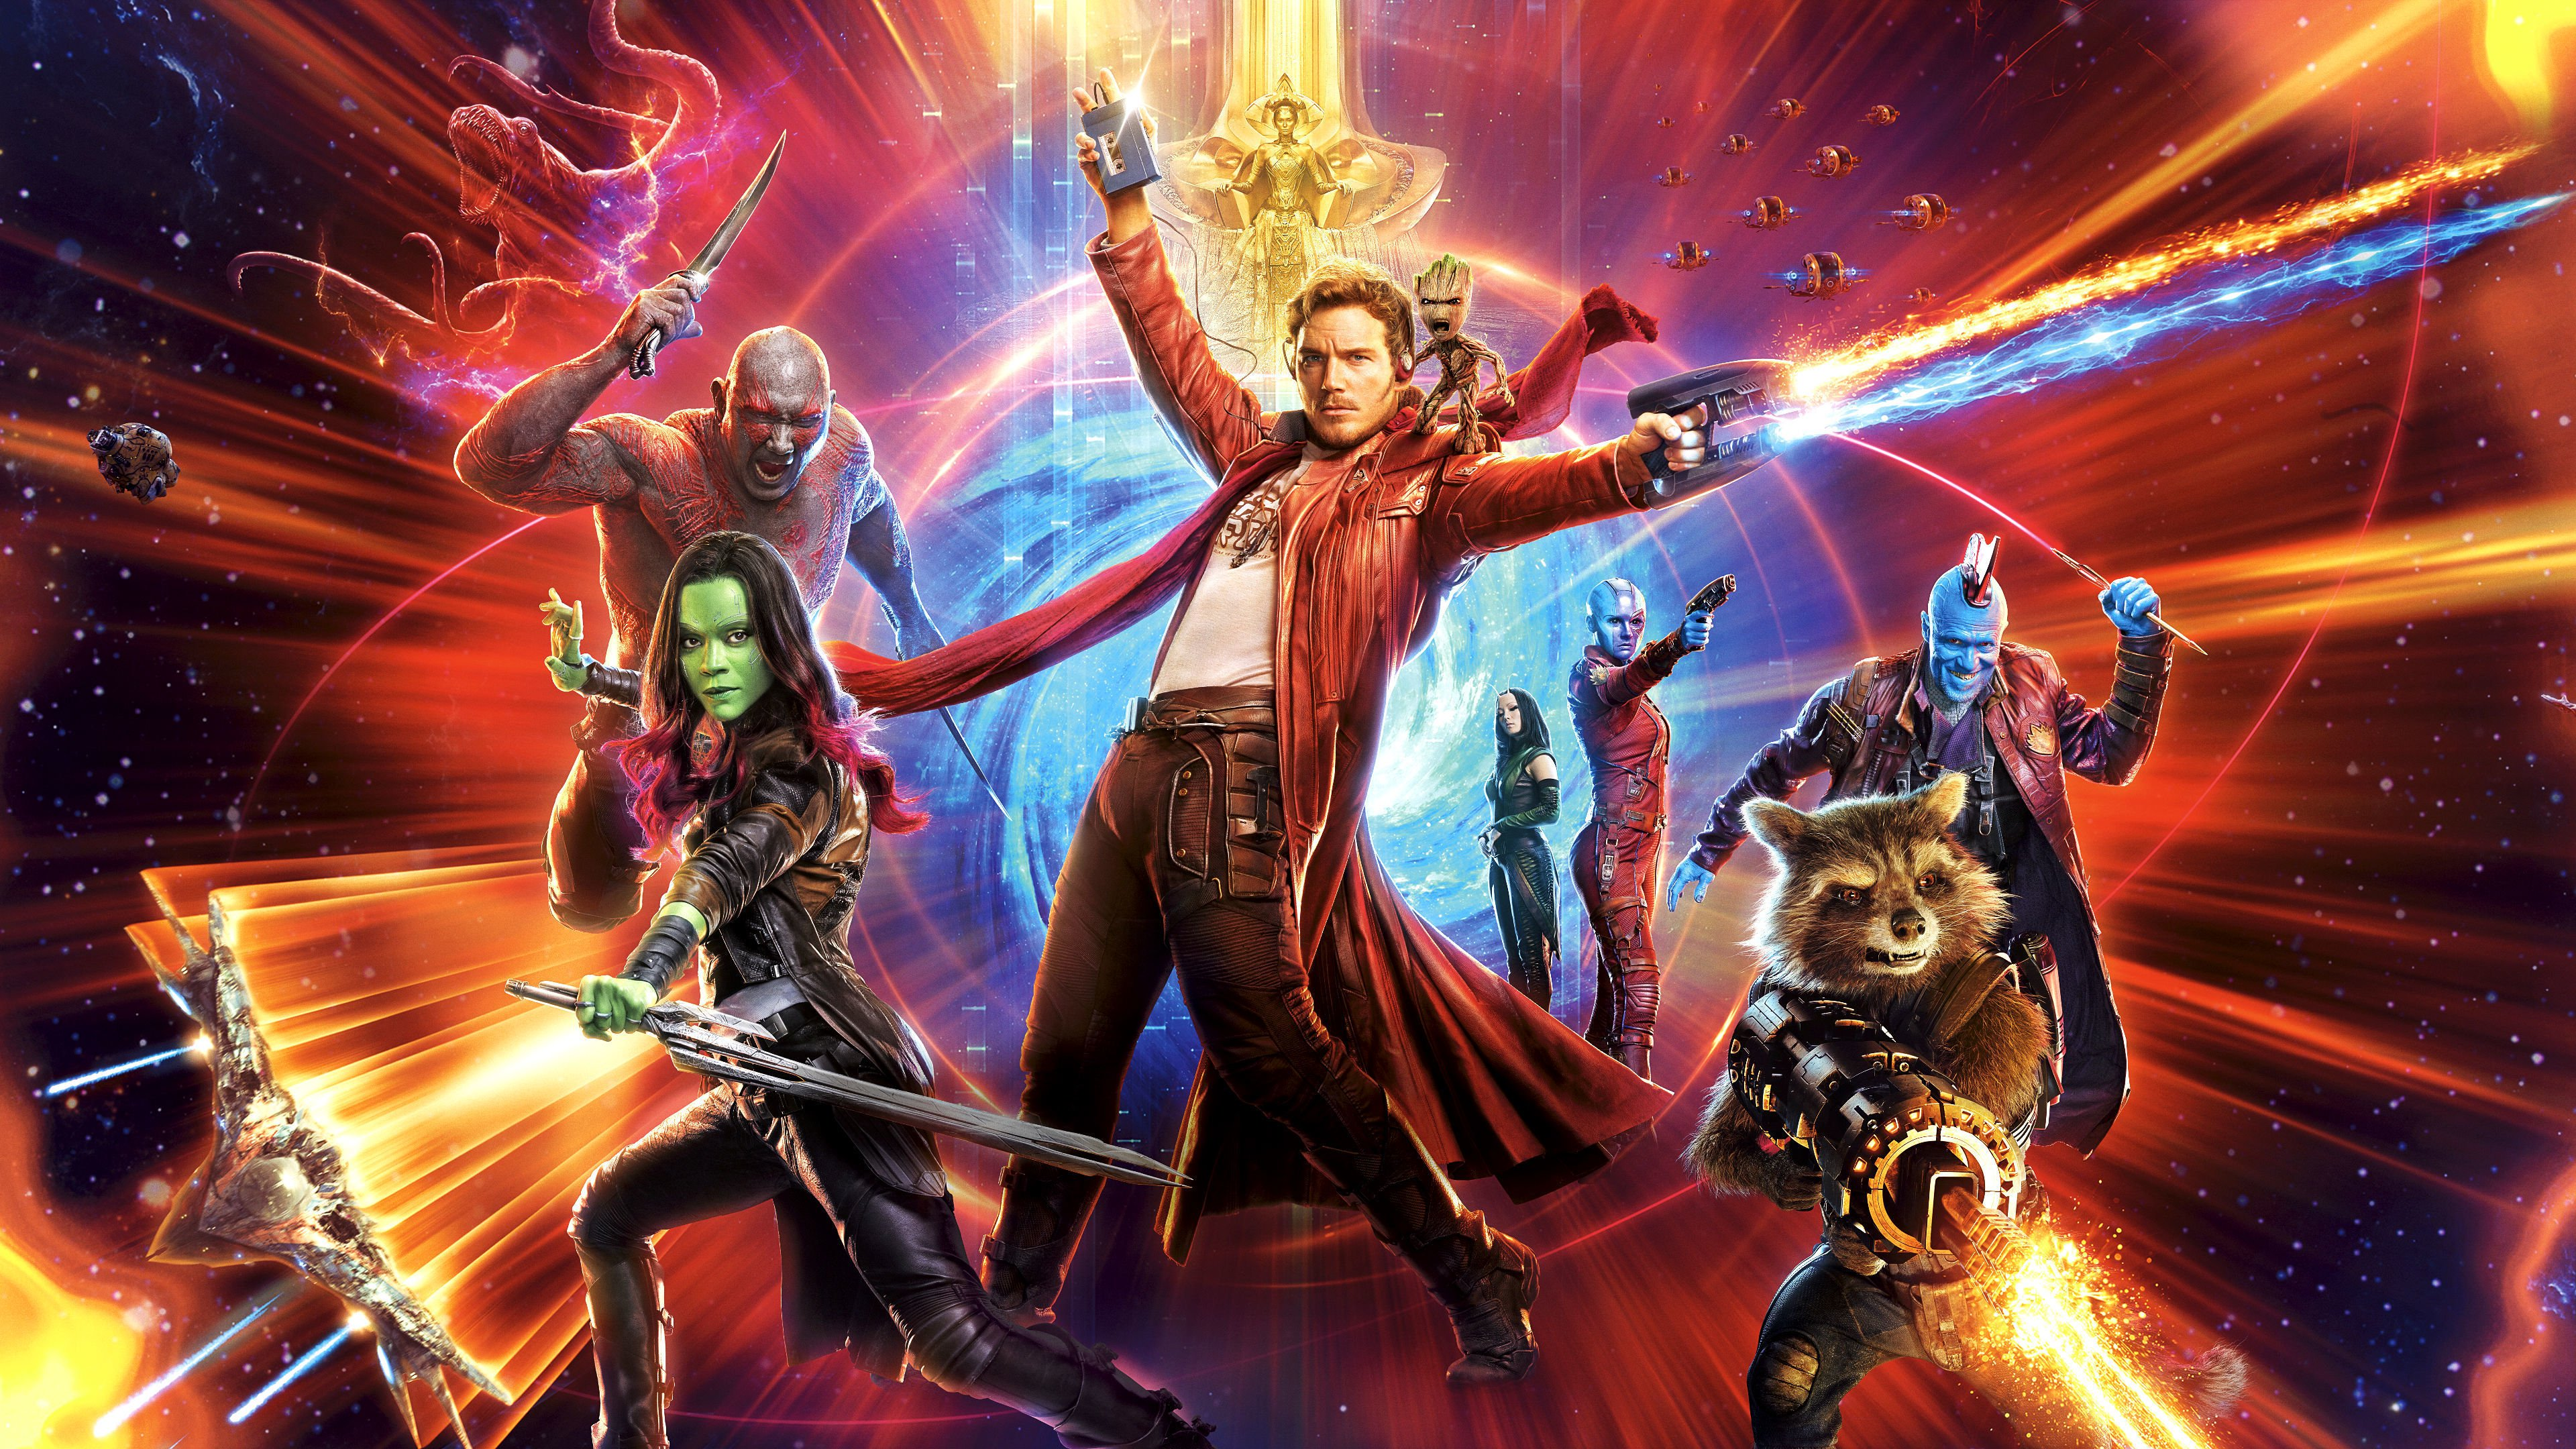 Guardians Of The Galaxy Vol 2 Full Movie Online 123movies